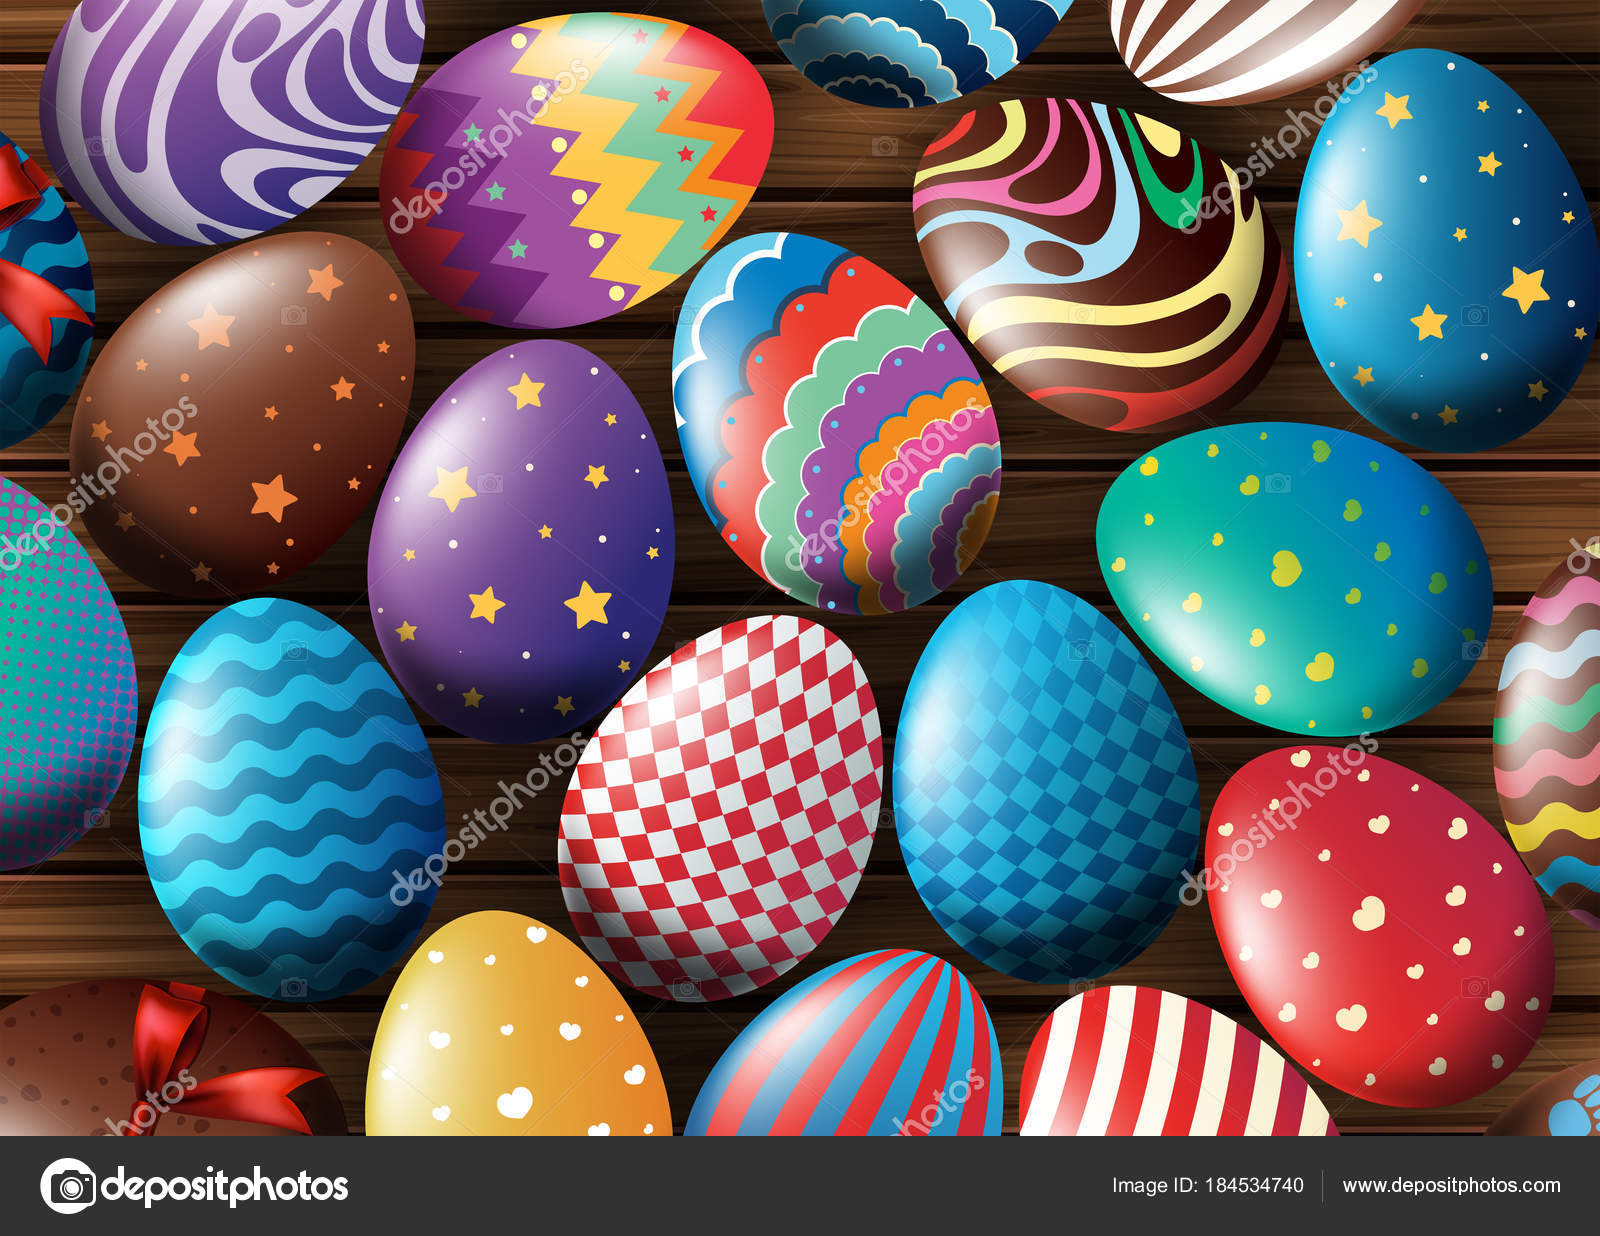 Background Design With Decorated Eggs Stock Vector C Brgfx 184534740